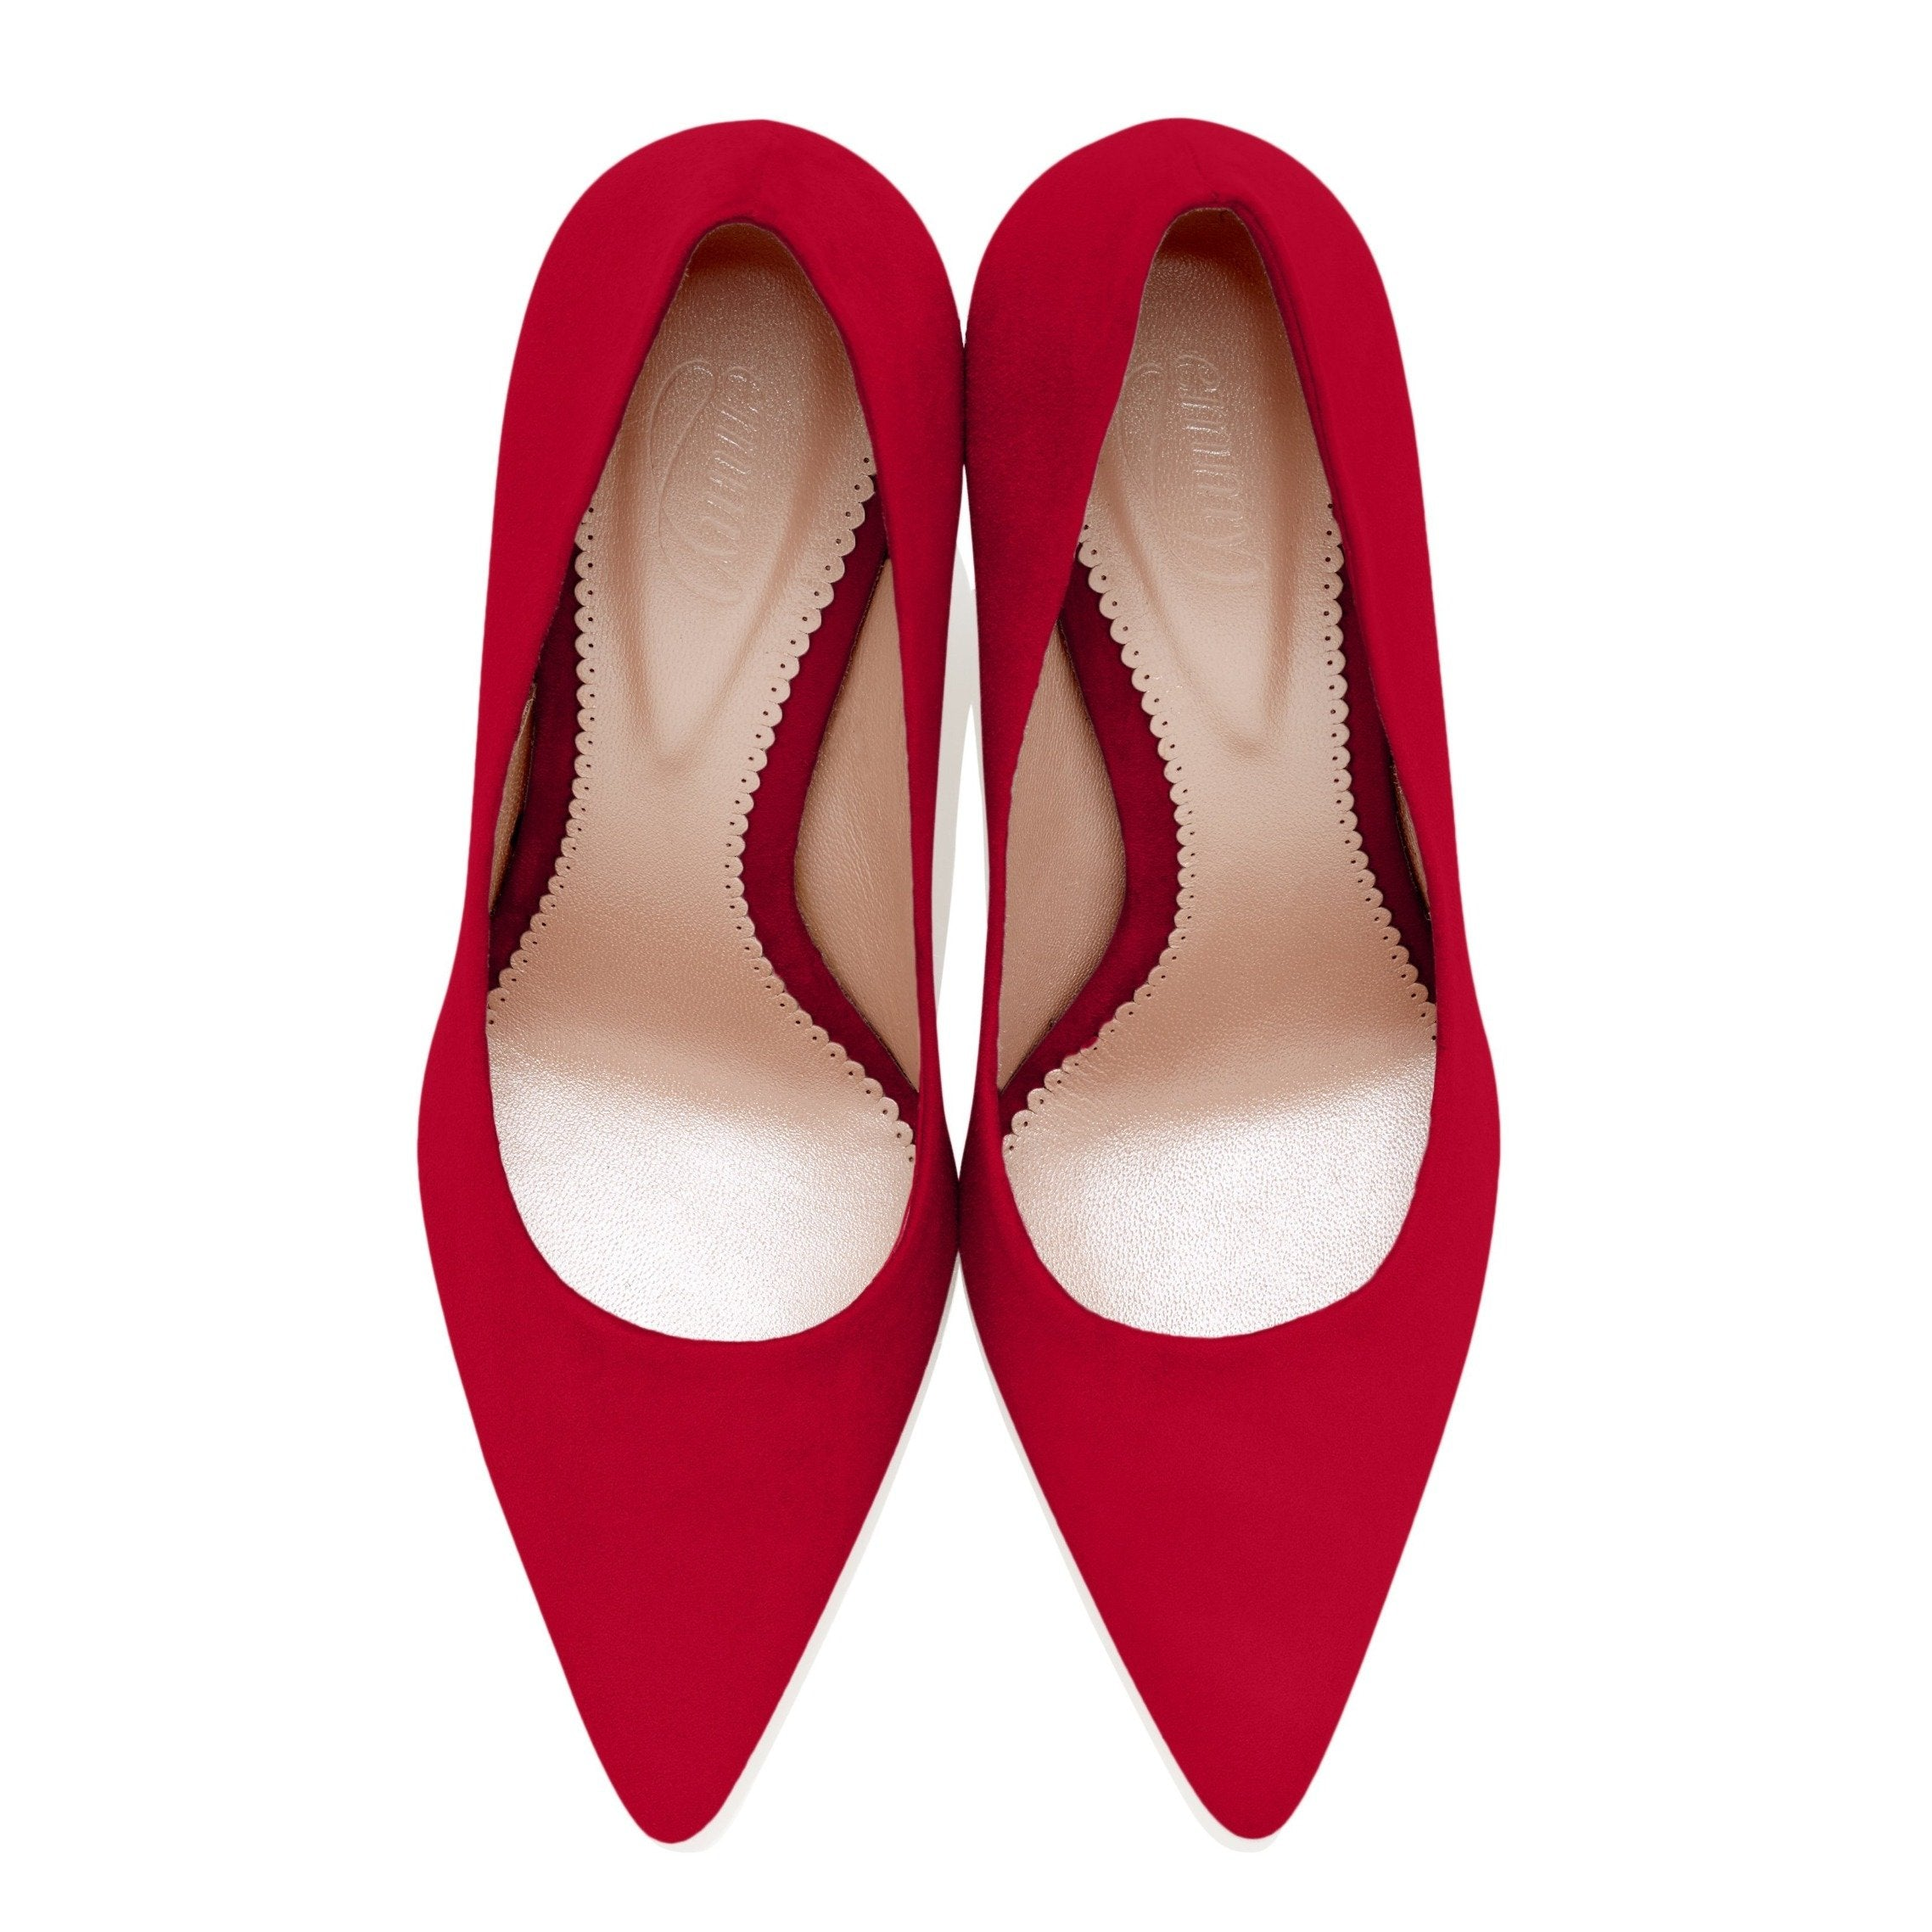 Lipstick Red Suede Court Shoes Designed In London By Emmy Scarterfield